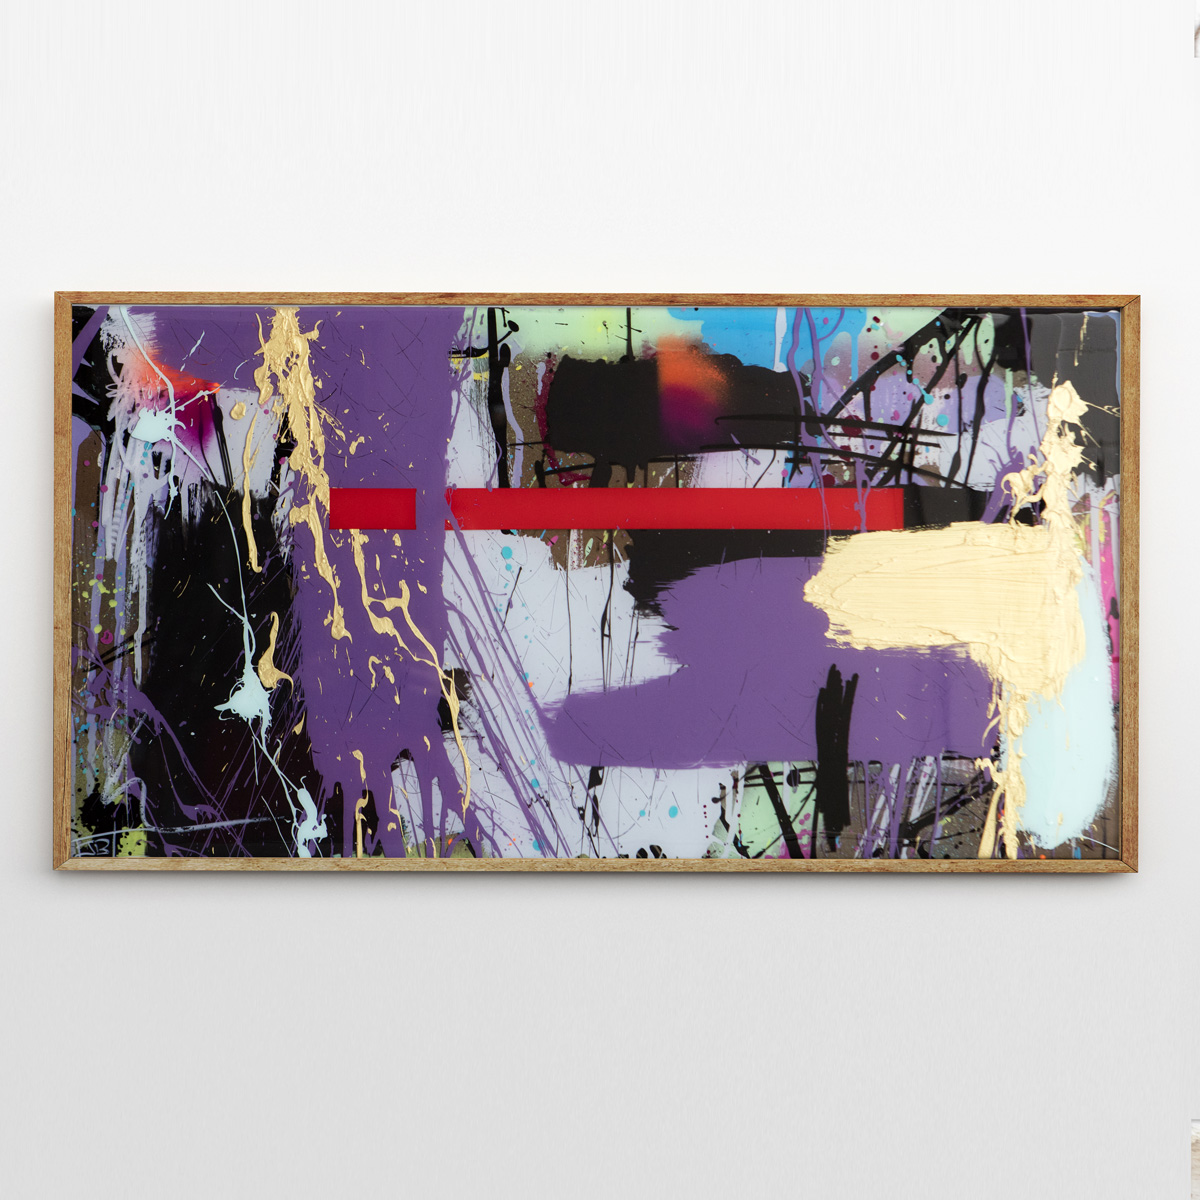 SIMPLICITY mixed media with layered epoxy resin finish 15 x 30 inches JBR 096G